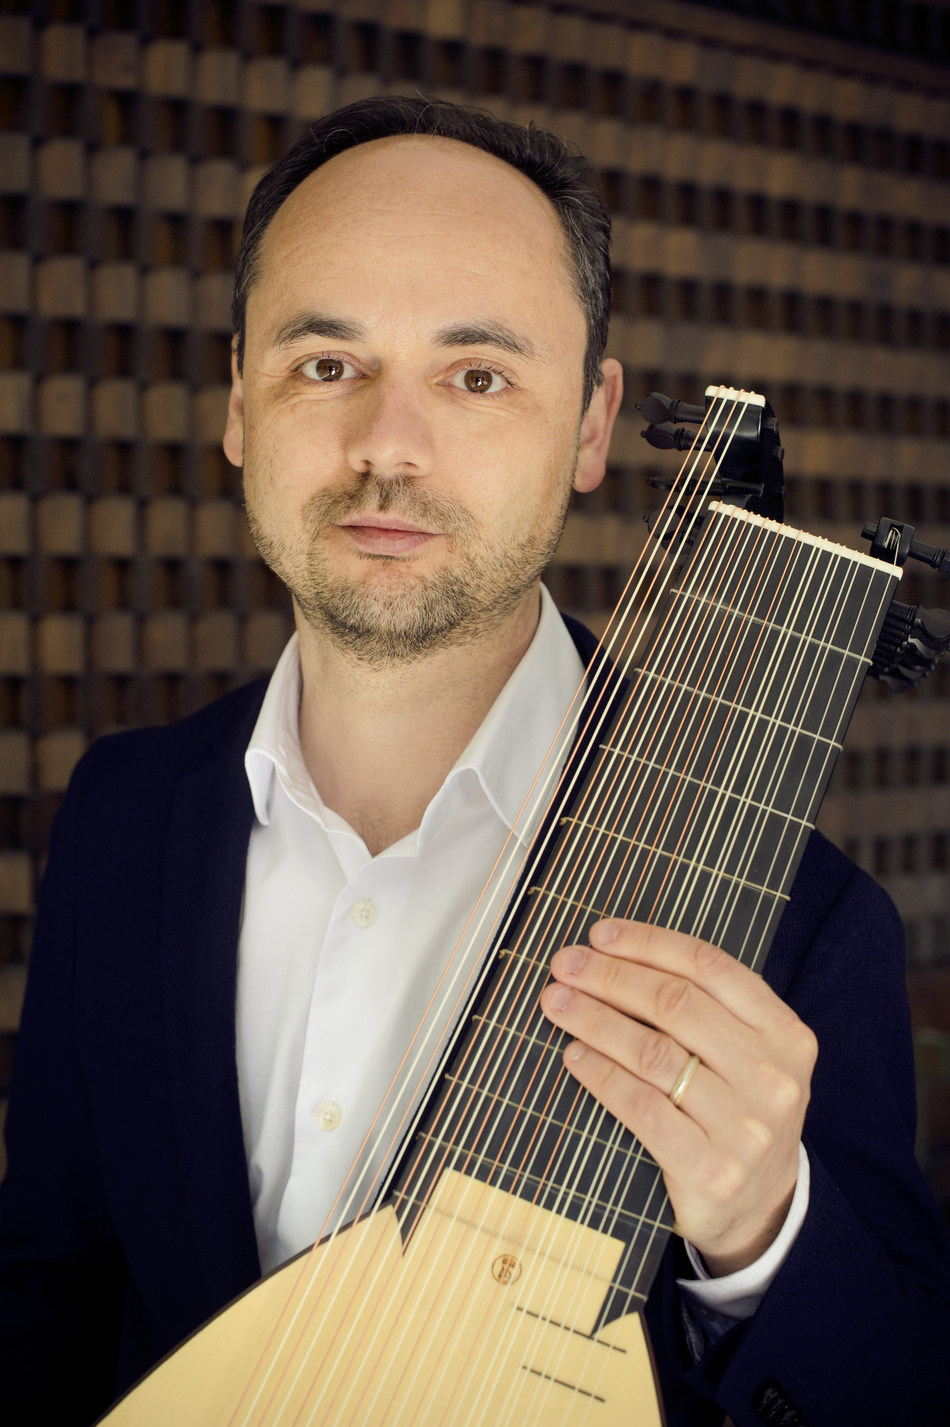 Miguel Serdoura with an authentic LLD® 13c Baroque lute. Photo © Jean-Baptiste Millot